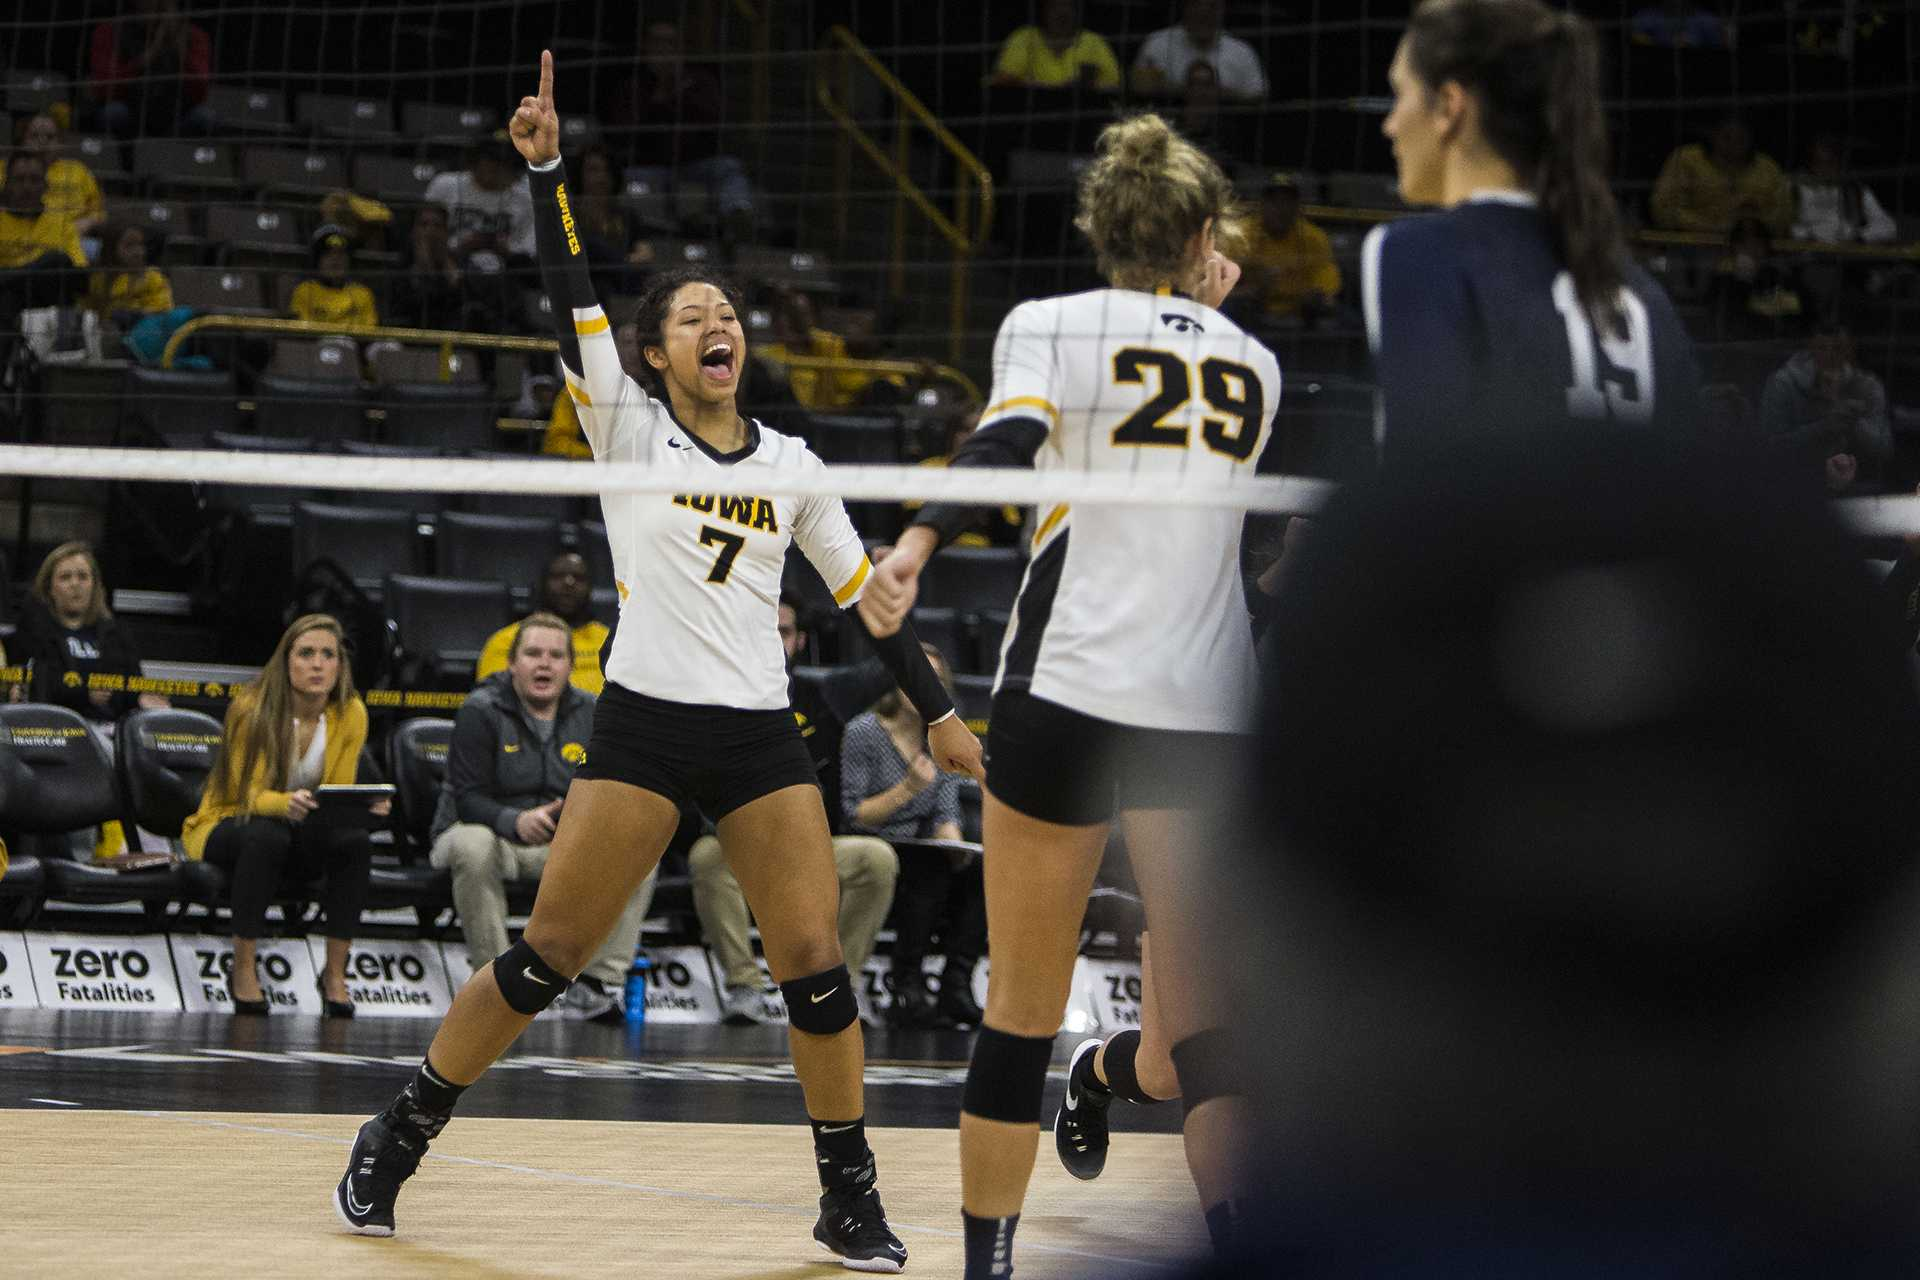 Iowa's Brie Orr (7) celebrates a point won during the match between Iowa and Penn State at Carver-Hawkeye Arena on Wednesday, Nov. 8, 2017. The Hawkeyes lost to the Nittany Lions 3-0. (Ben Smith/The Daily Iowan)